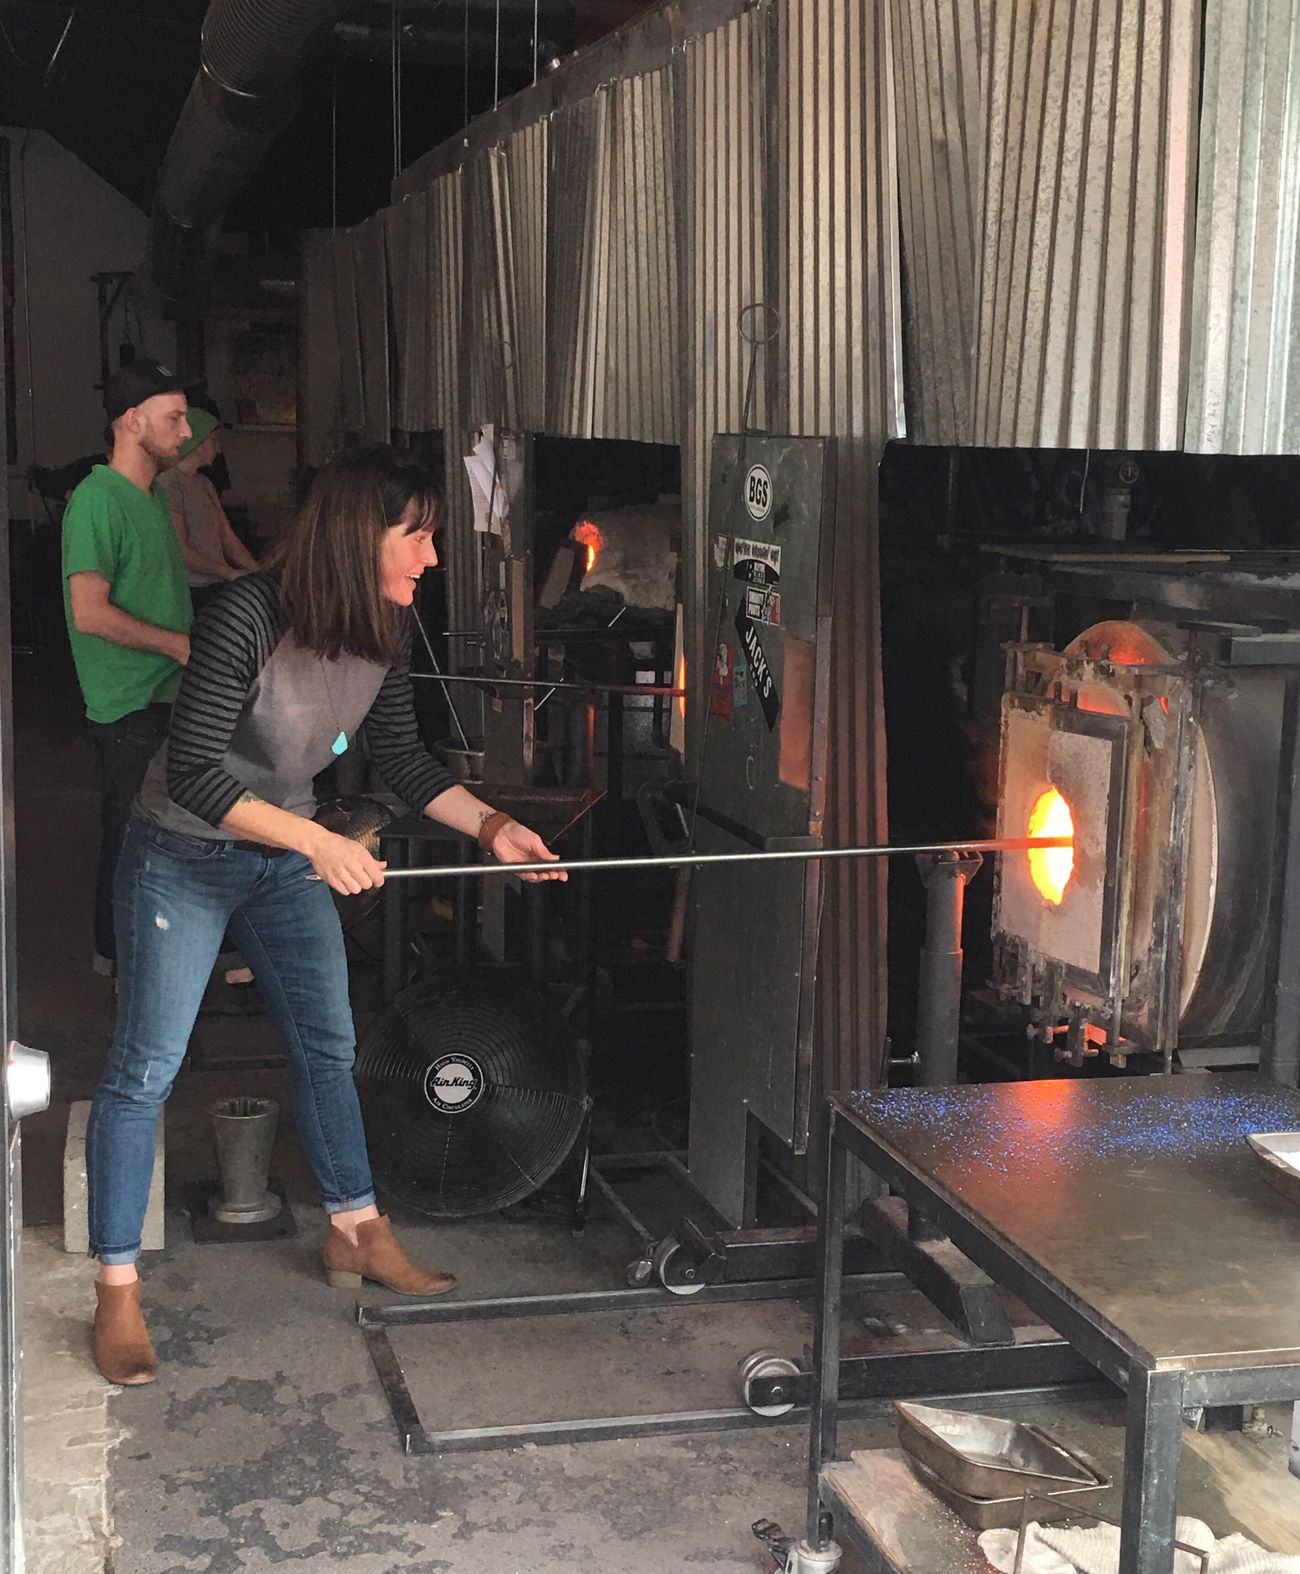 Flame Seattle Gamble Glass Blowing Furnace Fire Check This Out Woman Of EyeEm Woman Working Hot Hot Women Who Inspire You Womenpower Woman At Work Art ArtWork Creativity Seattle Gamble